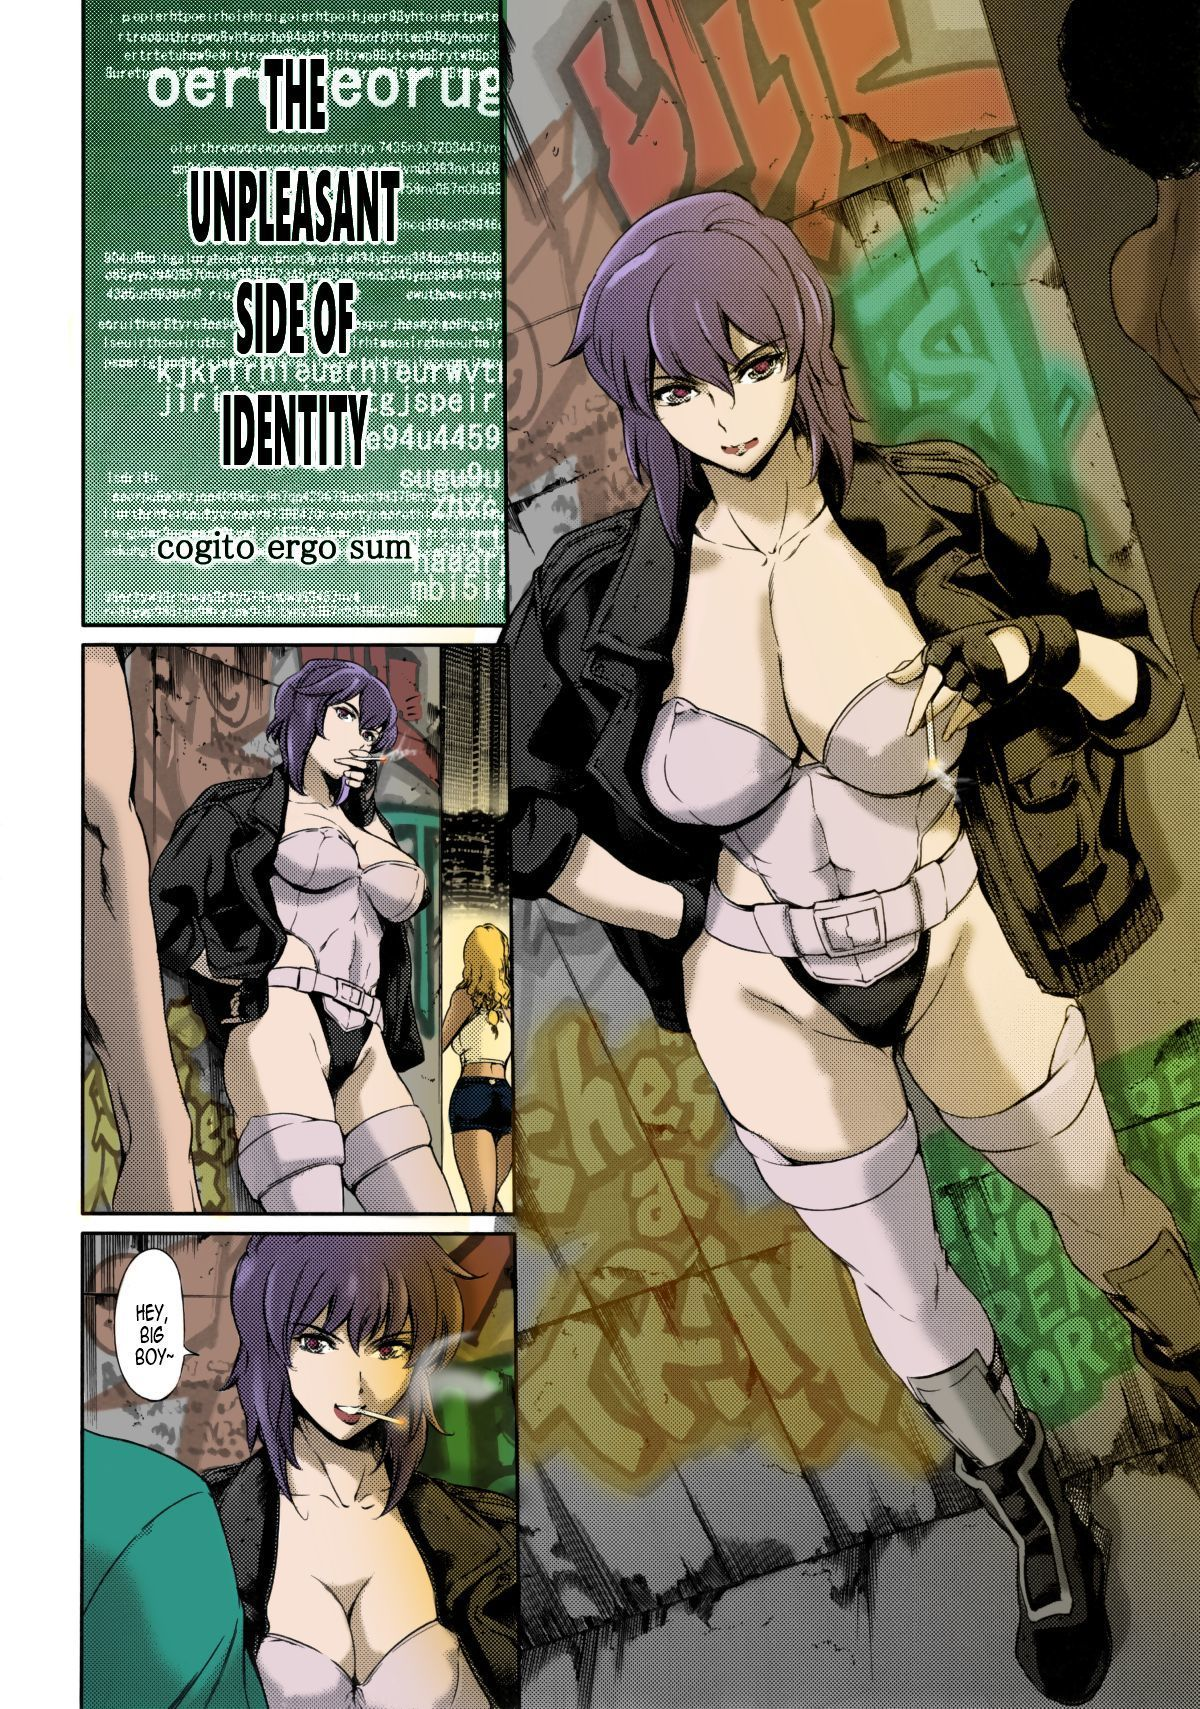 Ghost in the shell hentai pic, horny busty hot girls